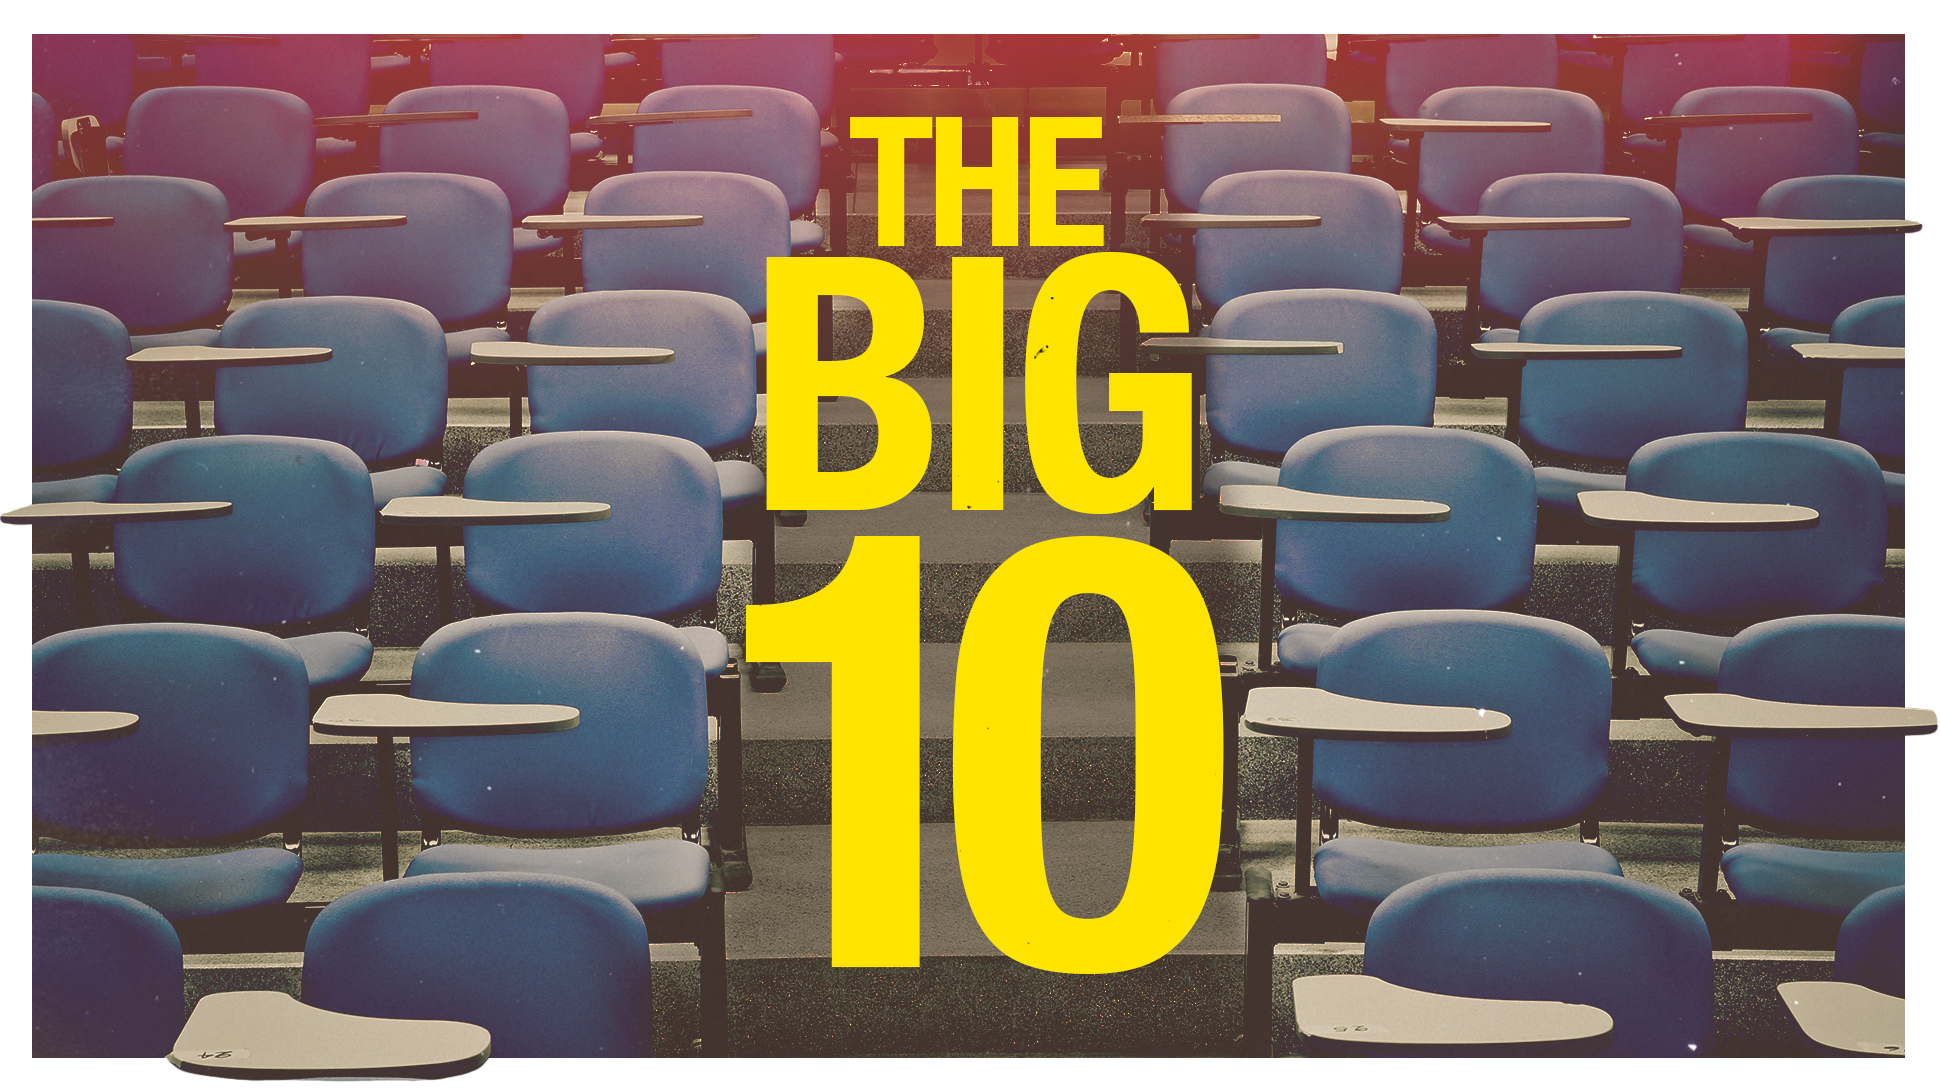 Amanda Rosa Play Boy big 10 2019: the 10 most represented colleges on broadway